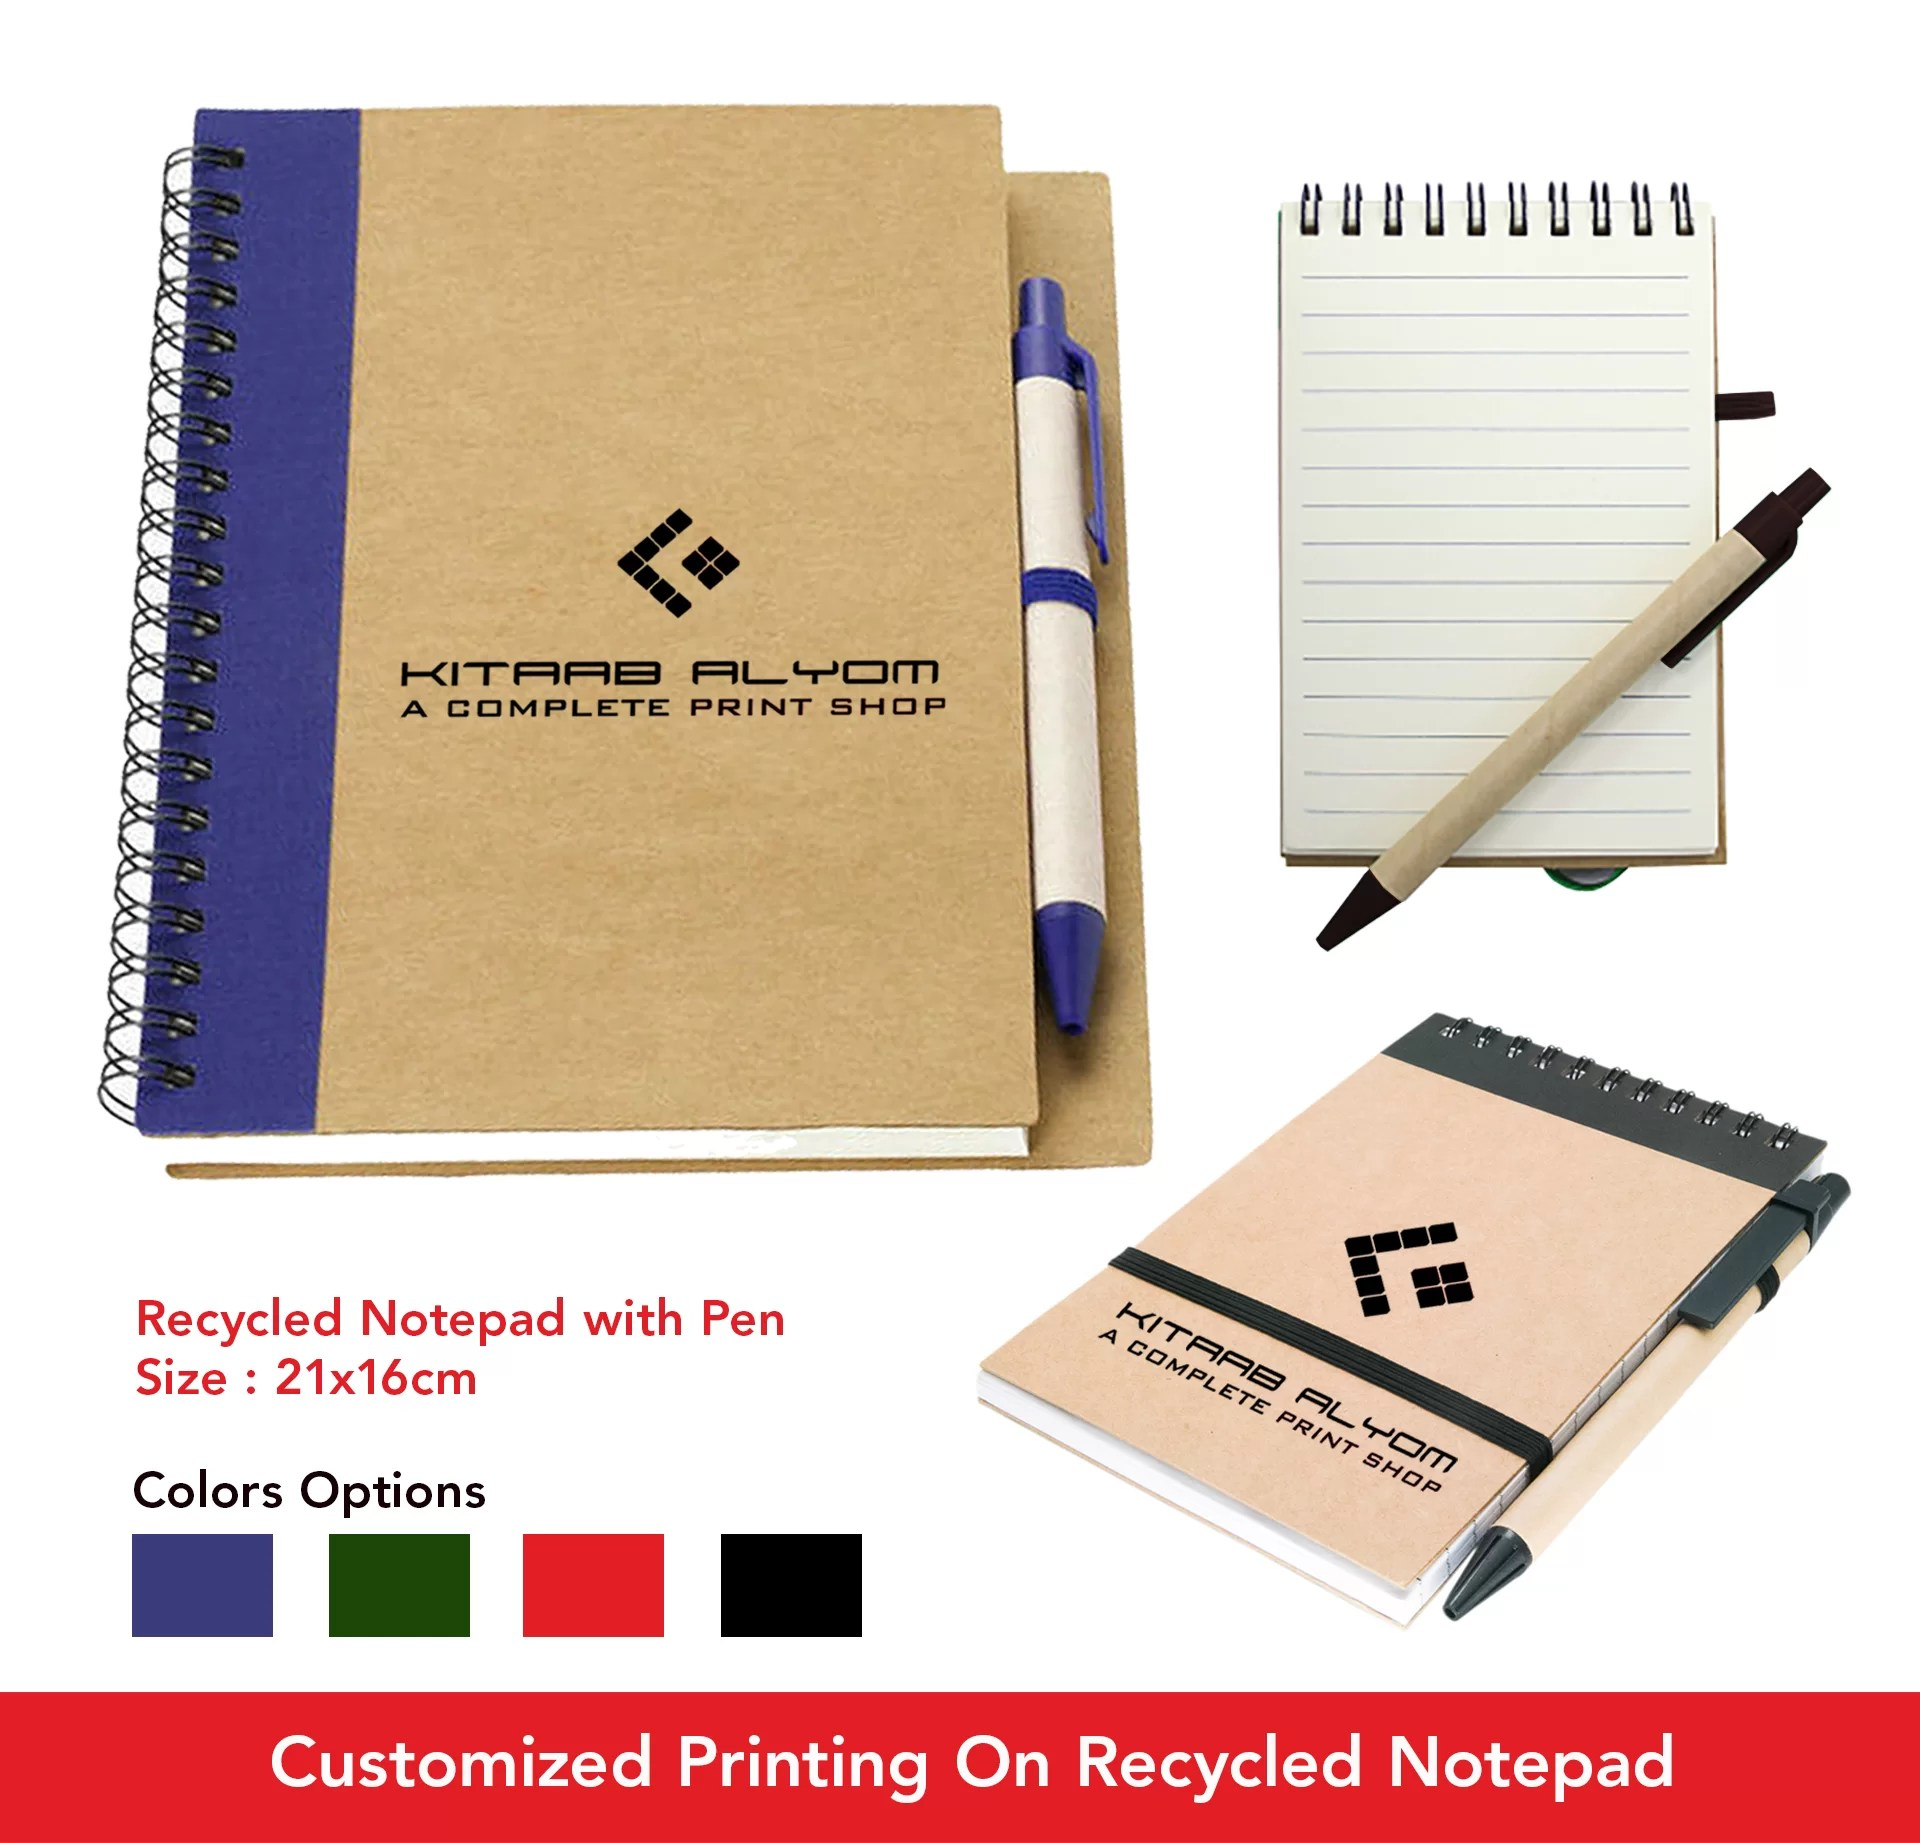 Recycled Notepad with Pen